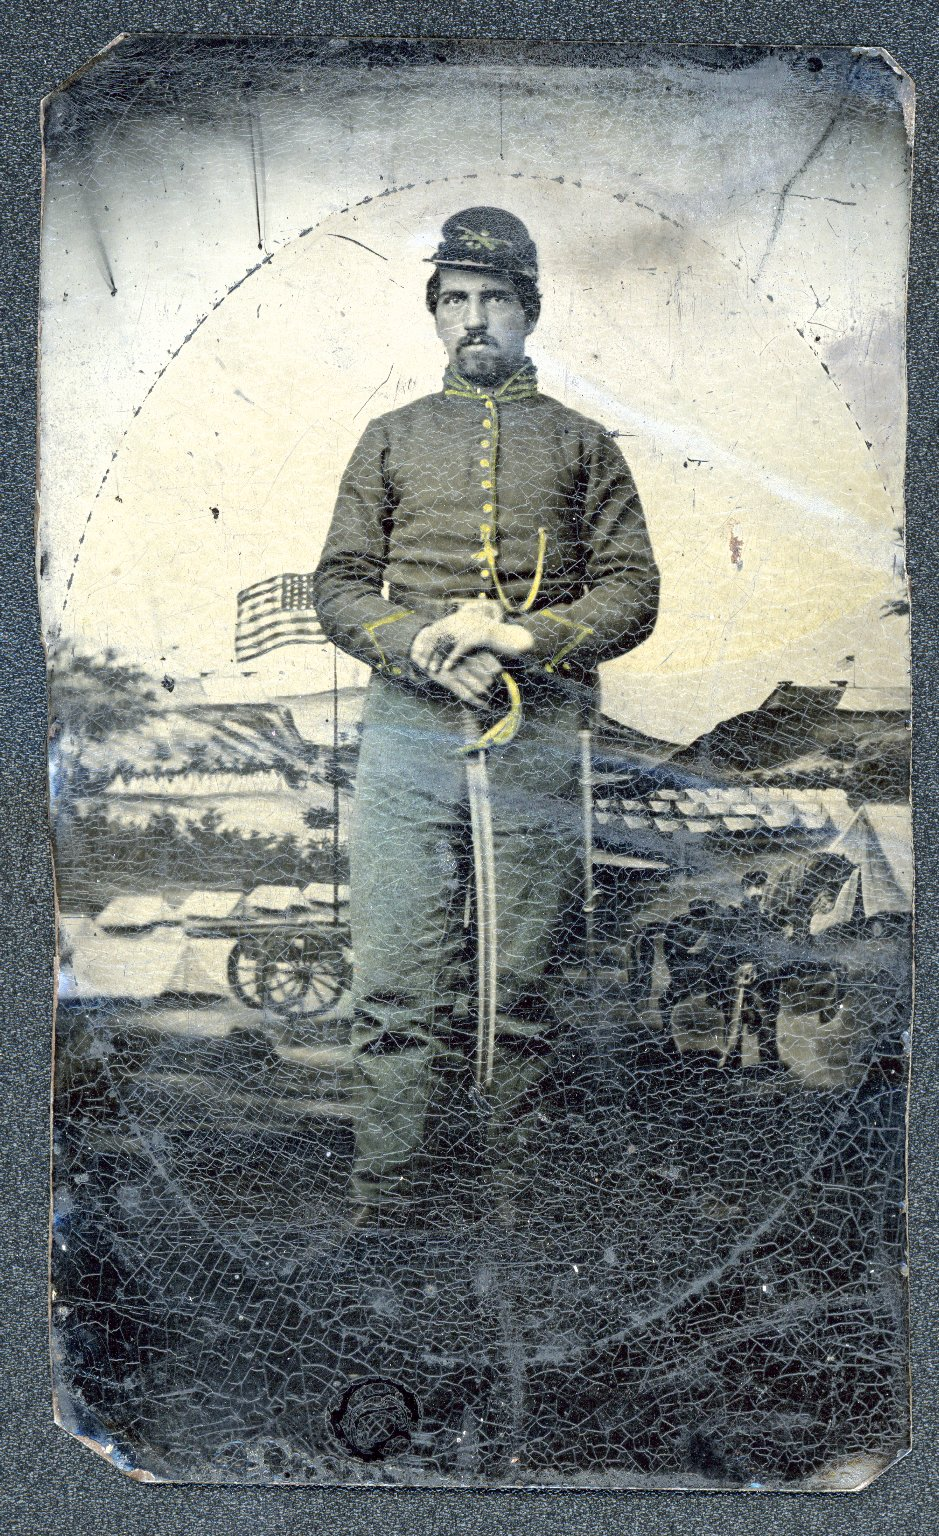 U. S. Civil War soldier portrait [enhanced]